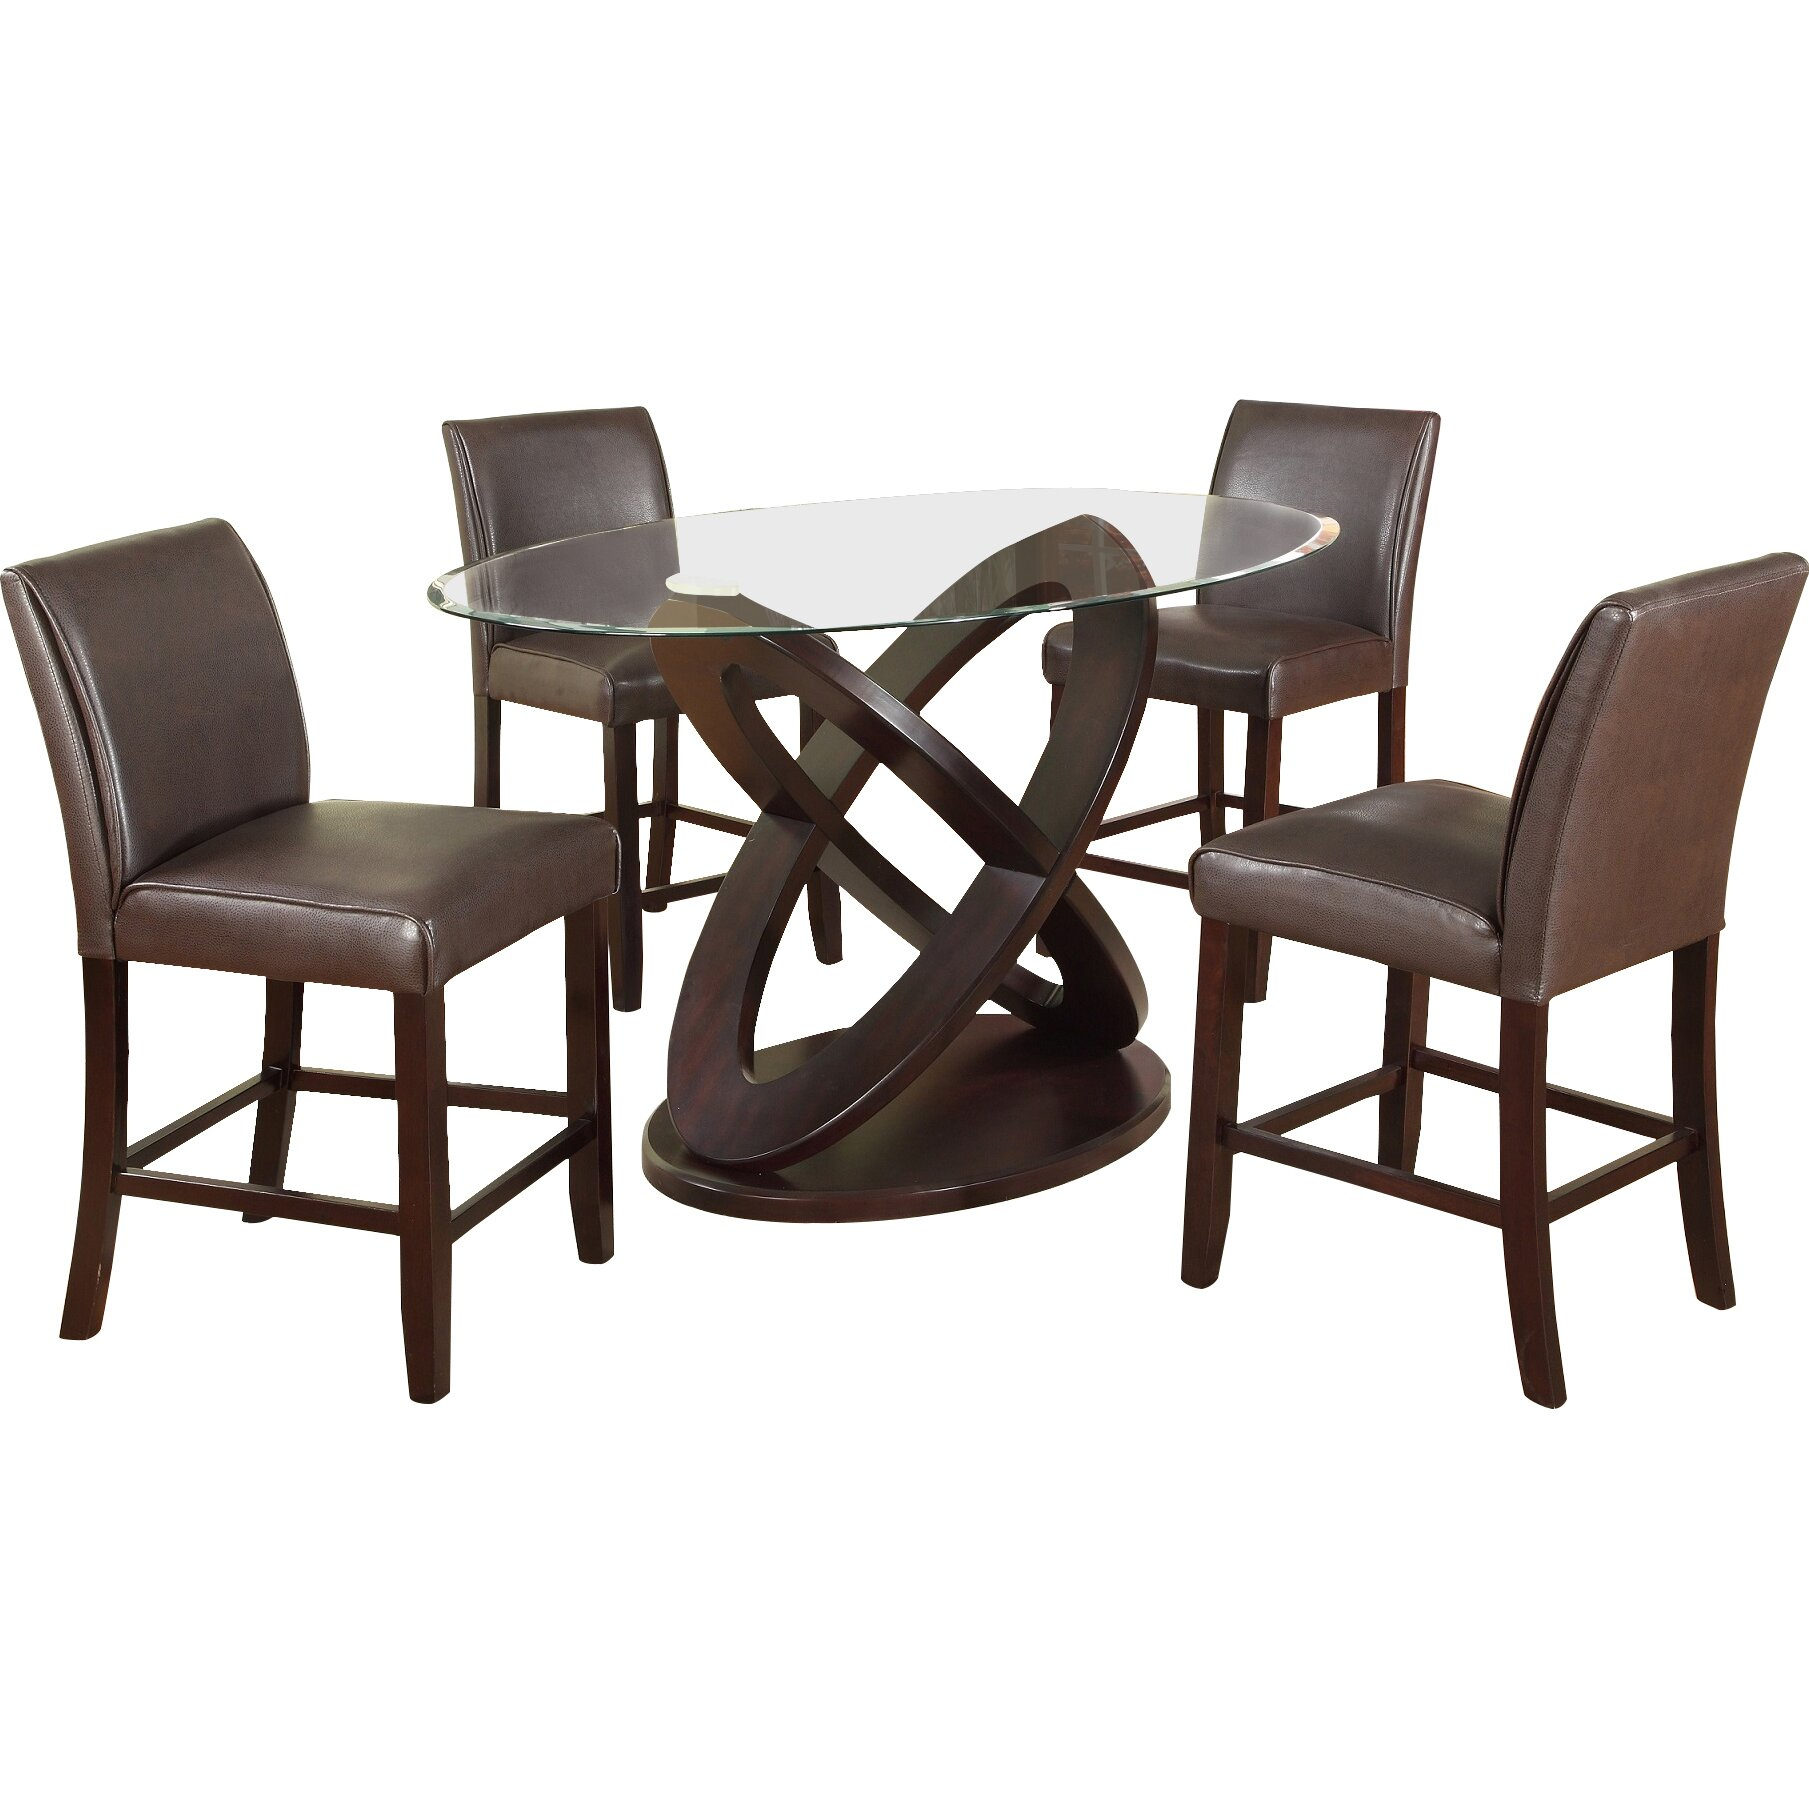 Roundhill furniture cicicol 5 piece counter height dining for 5 piece dining set